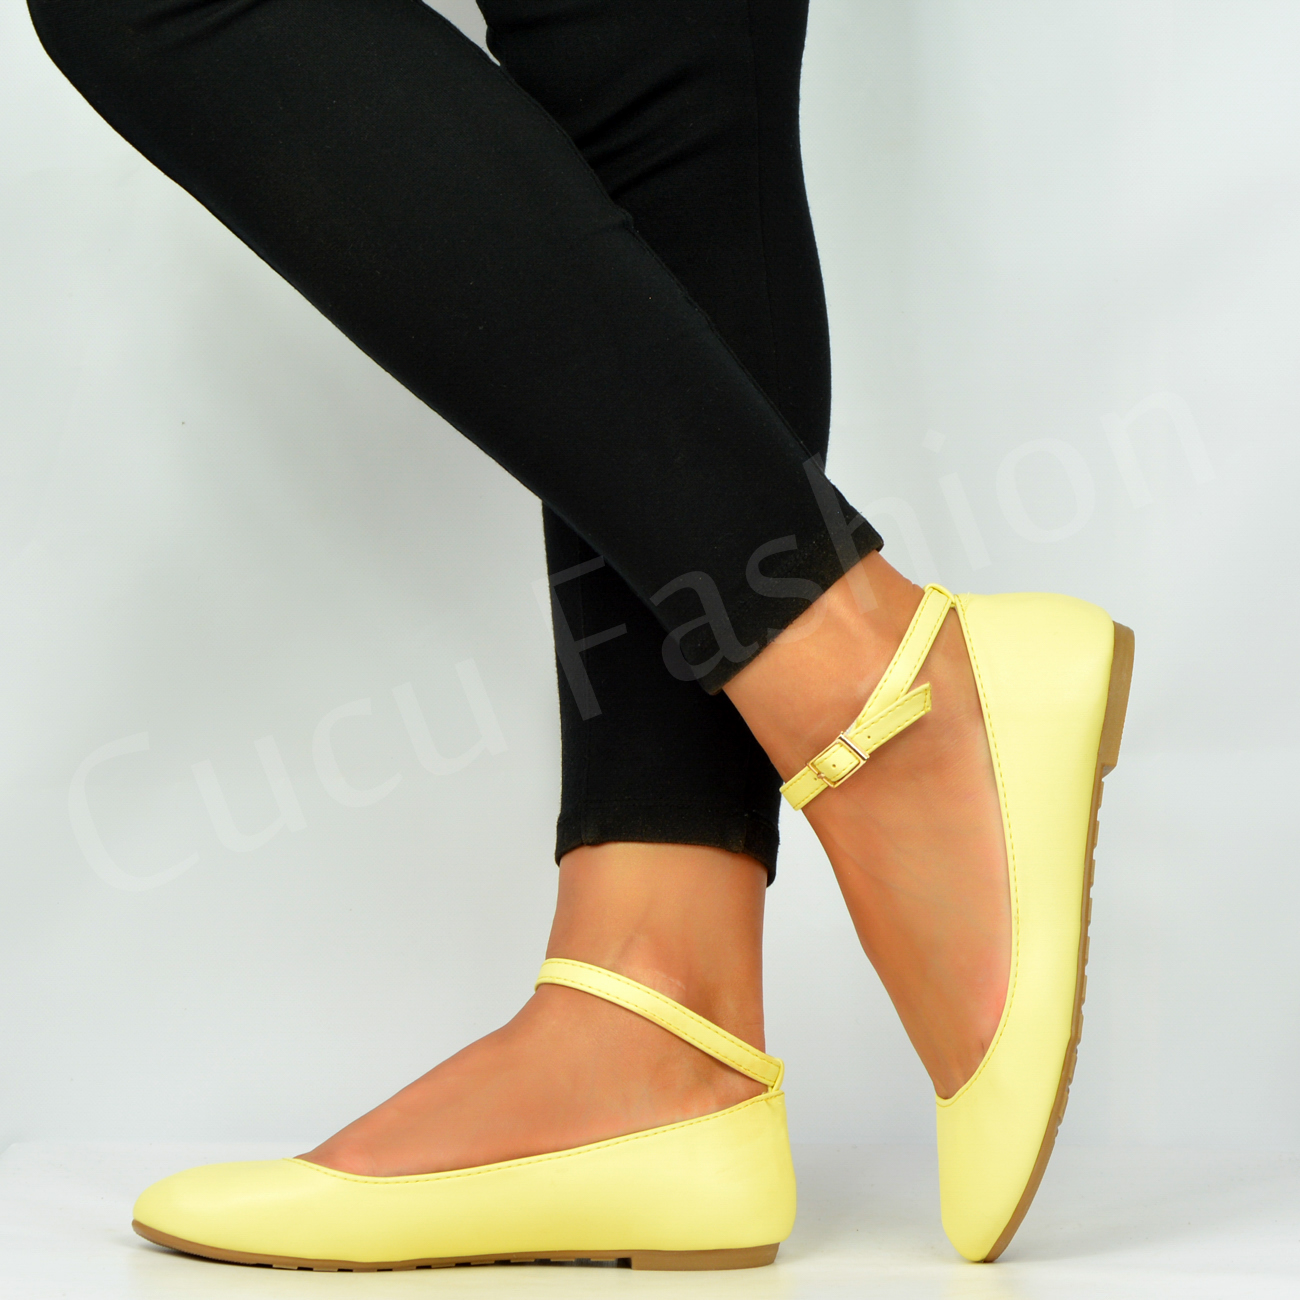 Free shipping BOTH ways on ankle strap ballet flats, from our vast selection of styles. Fast delivery, and 24/7/ real-person service with a smile. Click or call